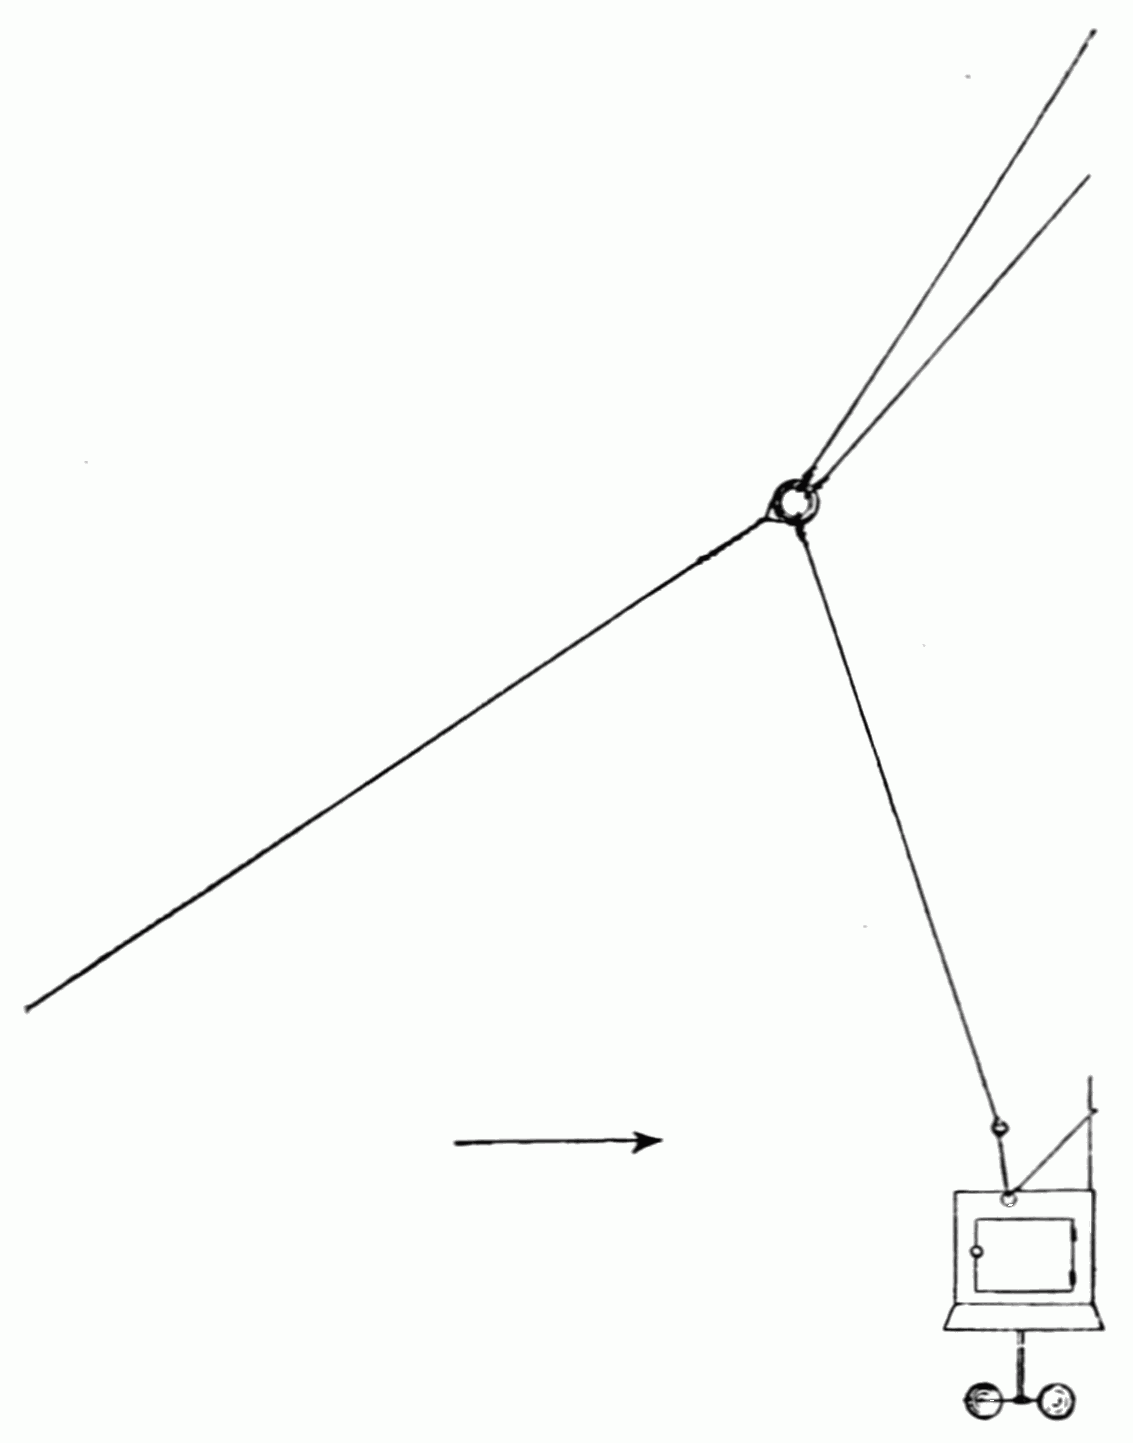 Popular Science Monthly Volume 53 May 1898 Kite Flying In 1897 Diagram Psm V53 D068 Tandem Hookup For Meteorograph